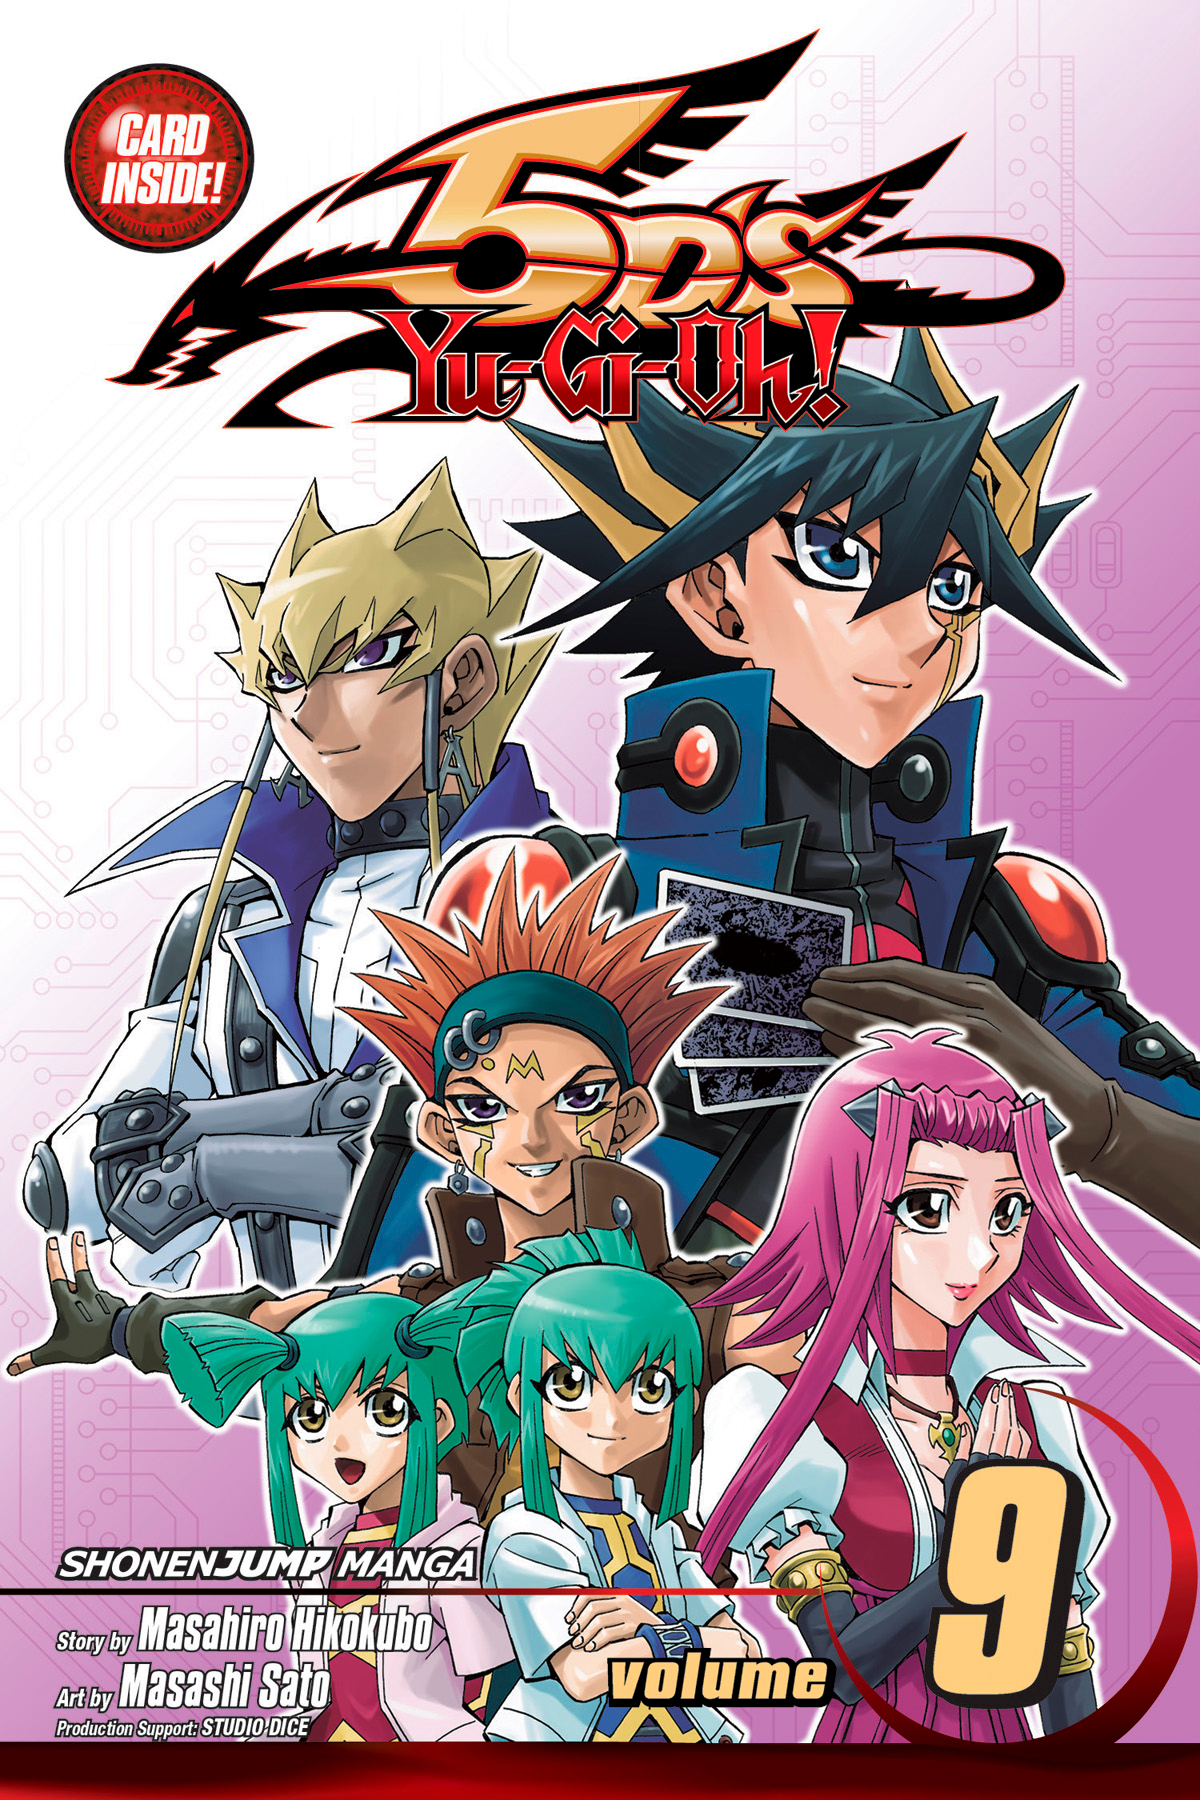 YU GI OH 5DS GN VOL 09